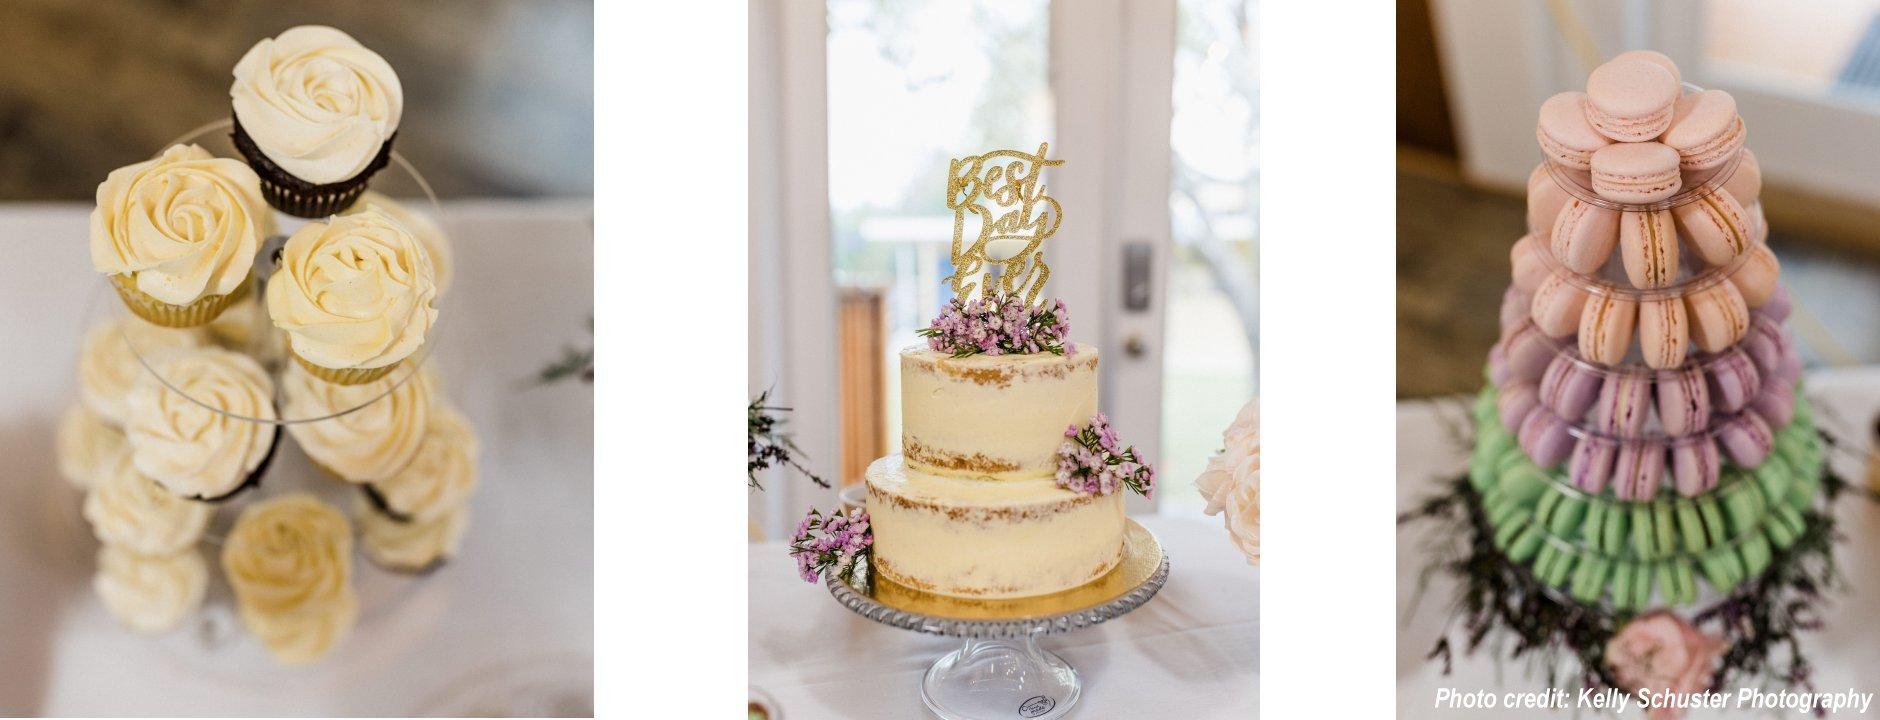 Wedding Cakes and Macarons Towers